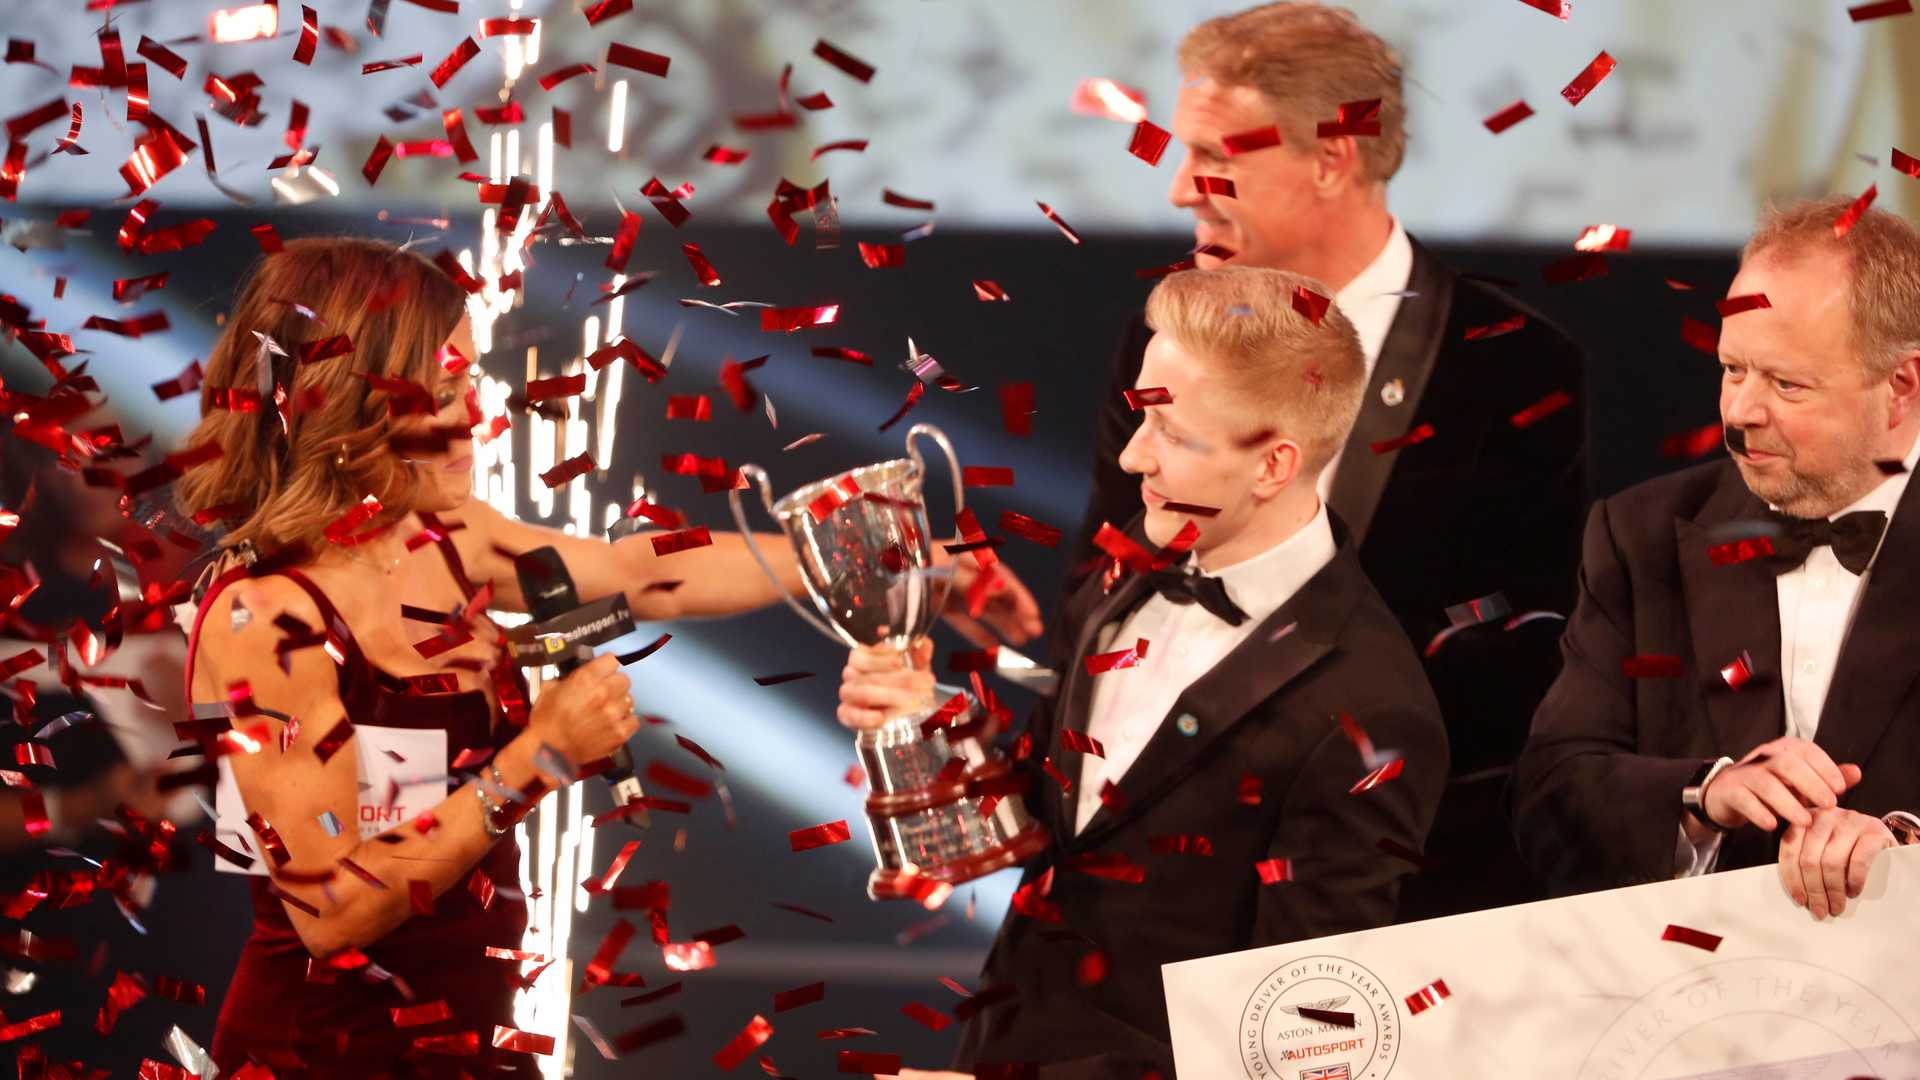 Motorsport superstars celebrate in London as a spectacular season draws to a close